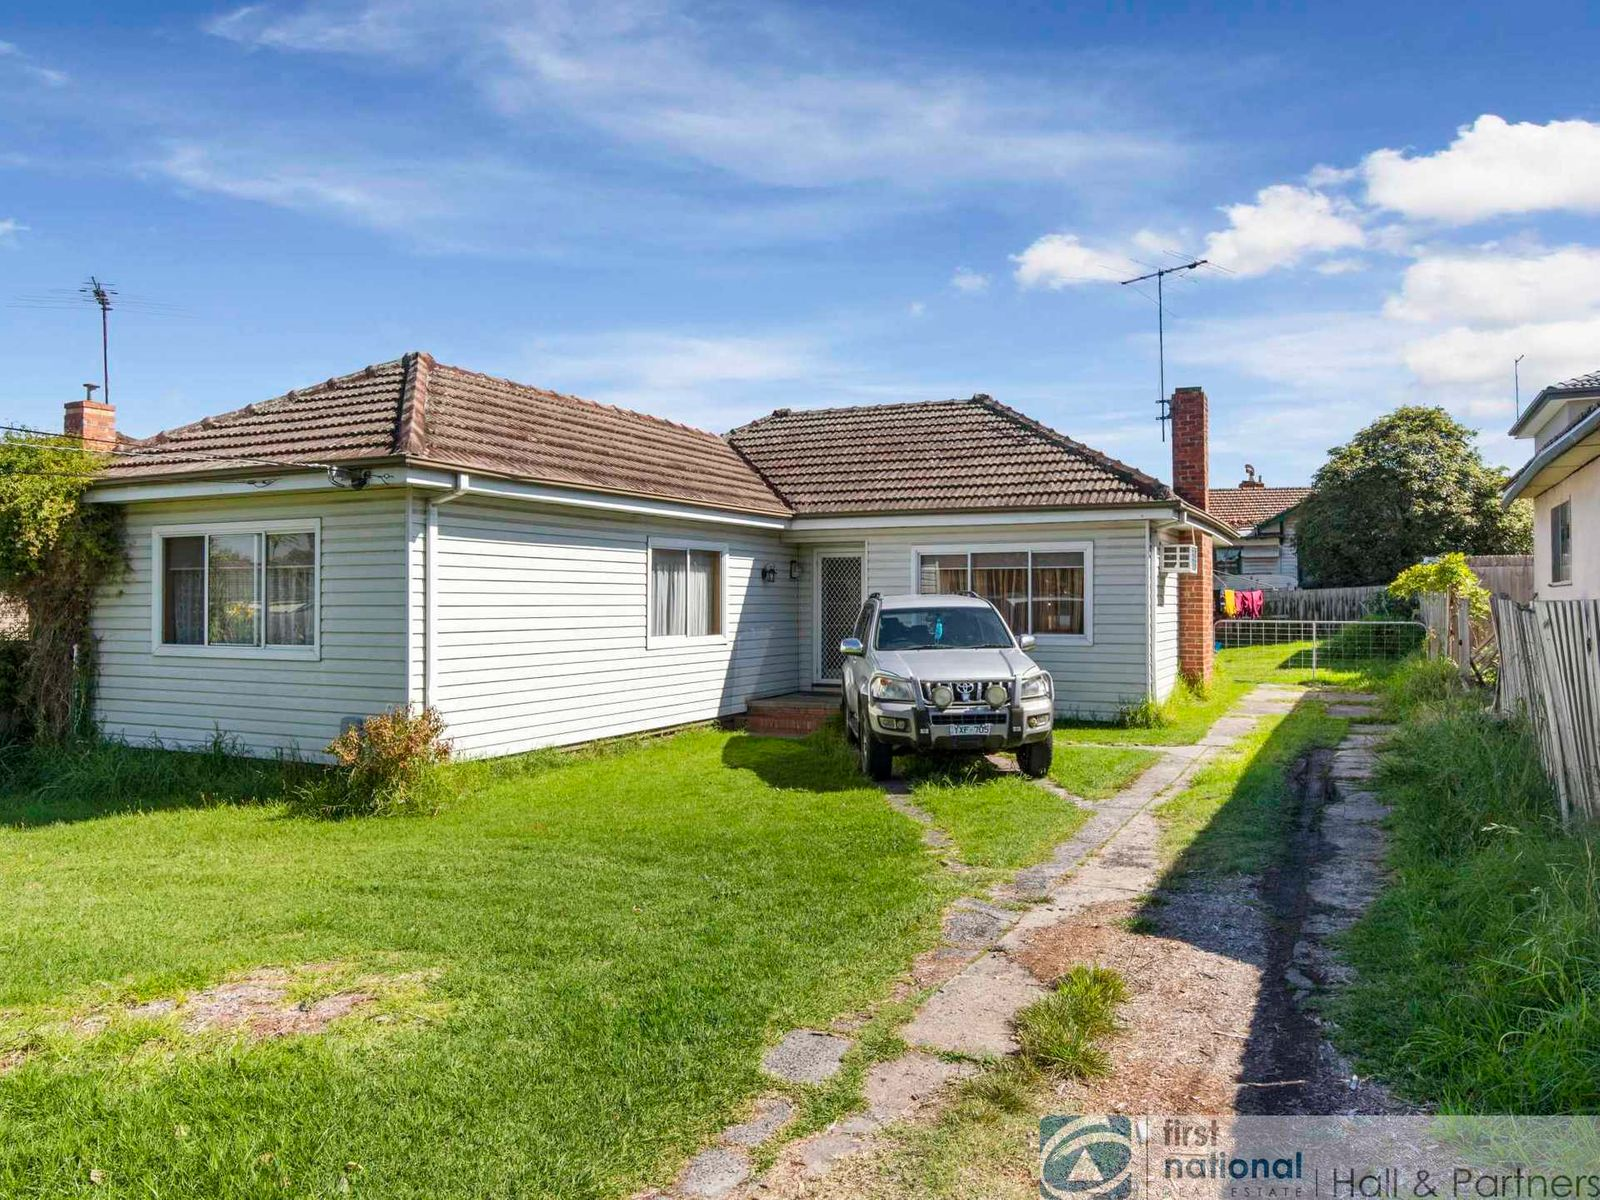 18 Fifth Avenue, Dandenong, VIC 3175